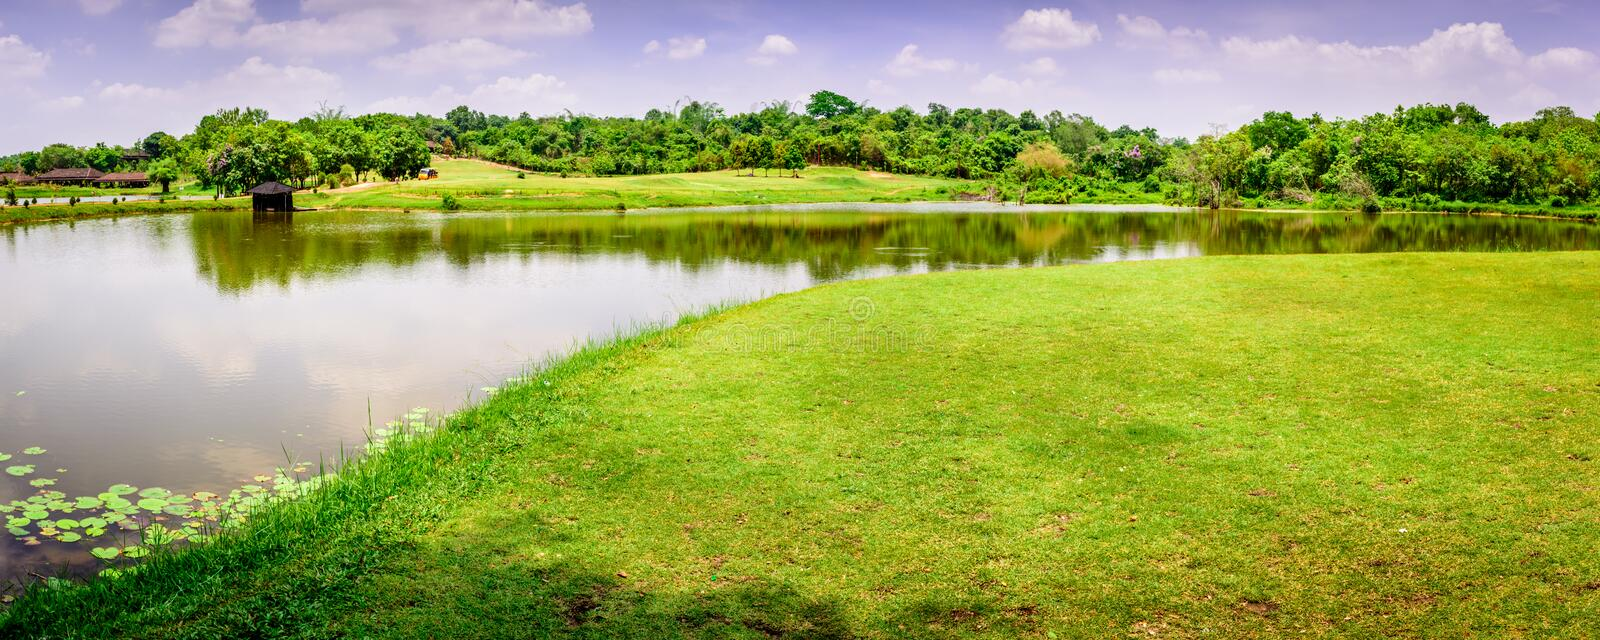 Landscape photo of beautiful scenery with lake, grass field and hill, near Yangon, Myanmar stock image